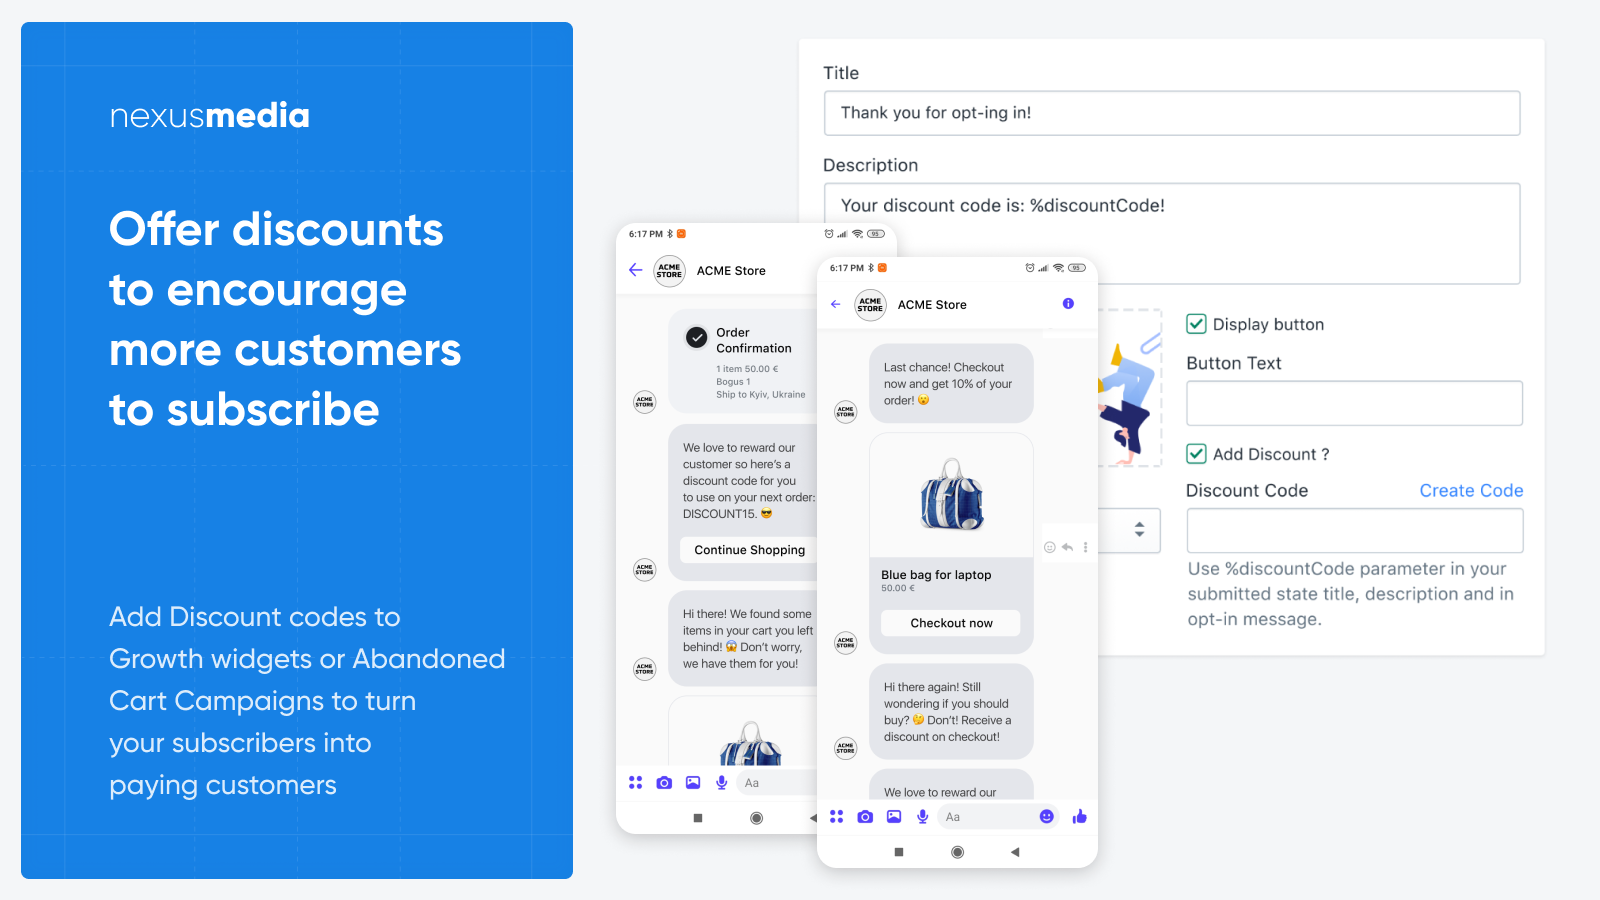 Offer discounts to engage more customers to subscribe